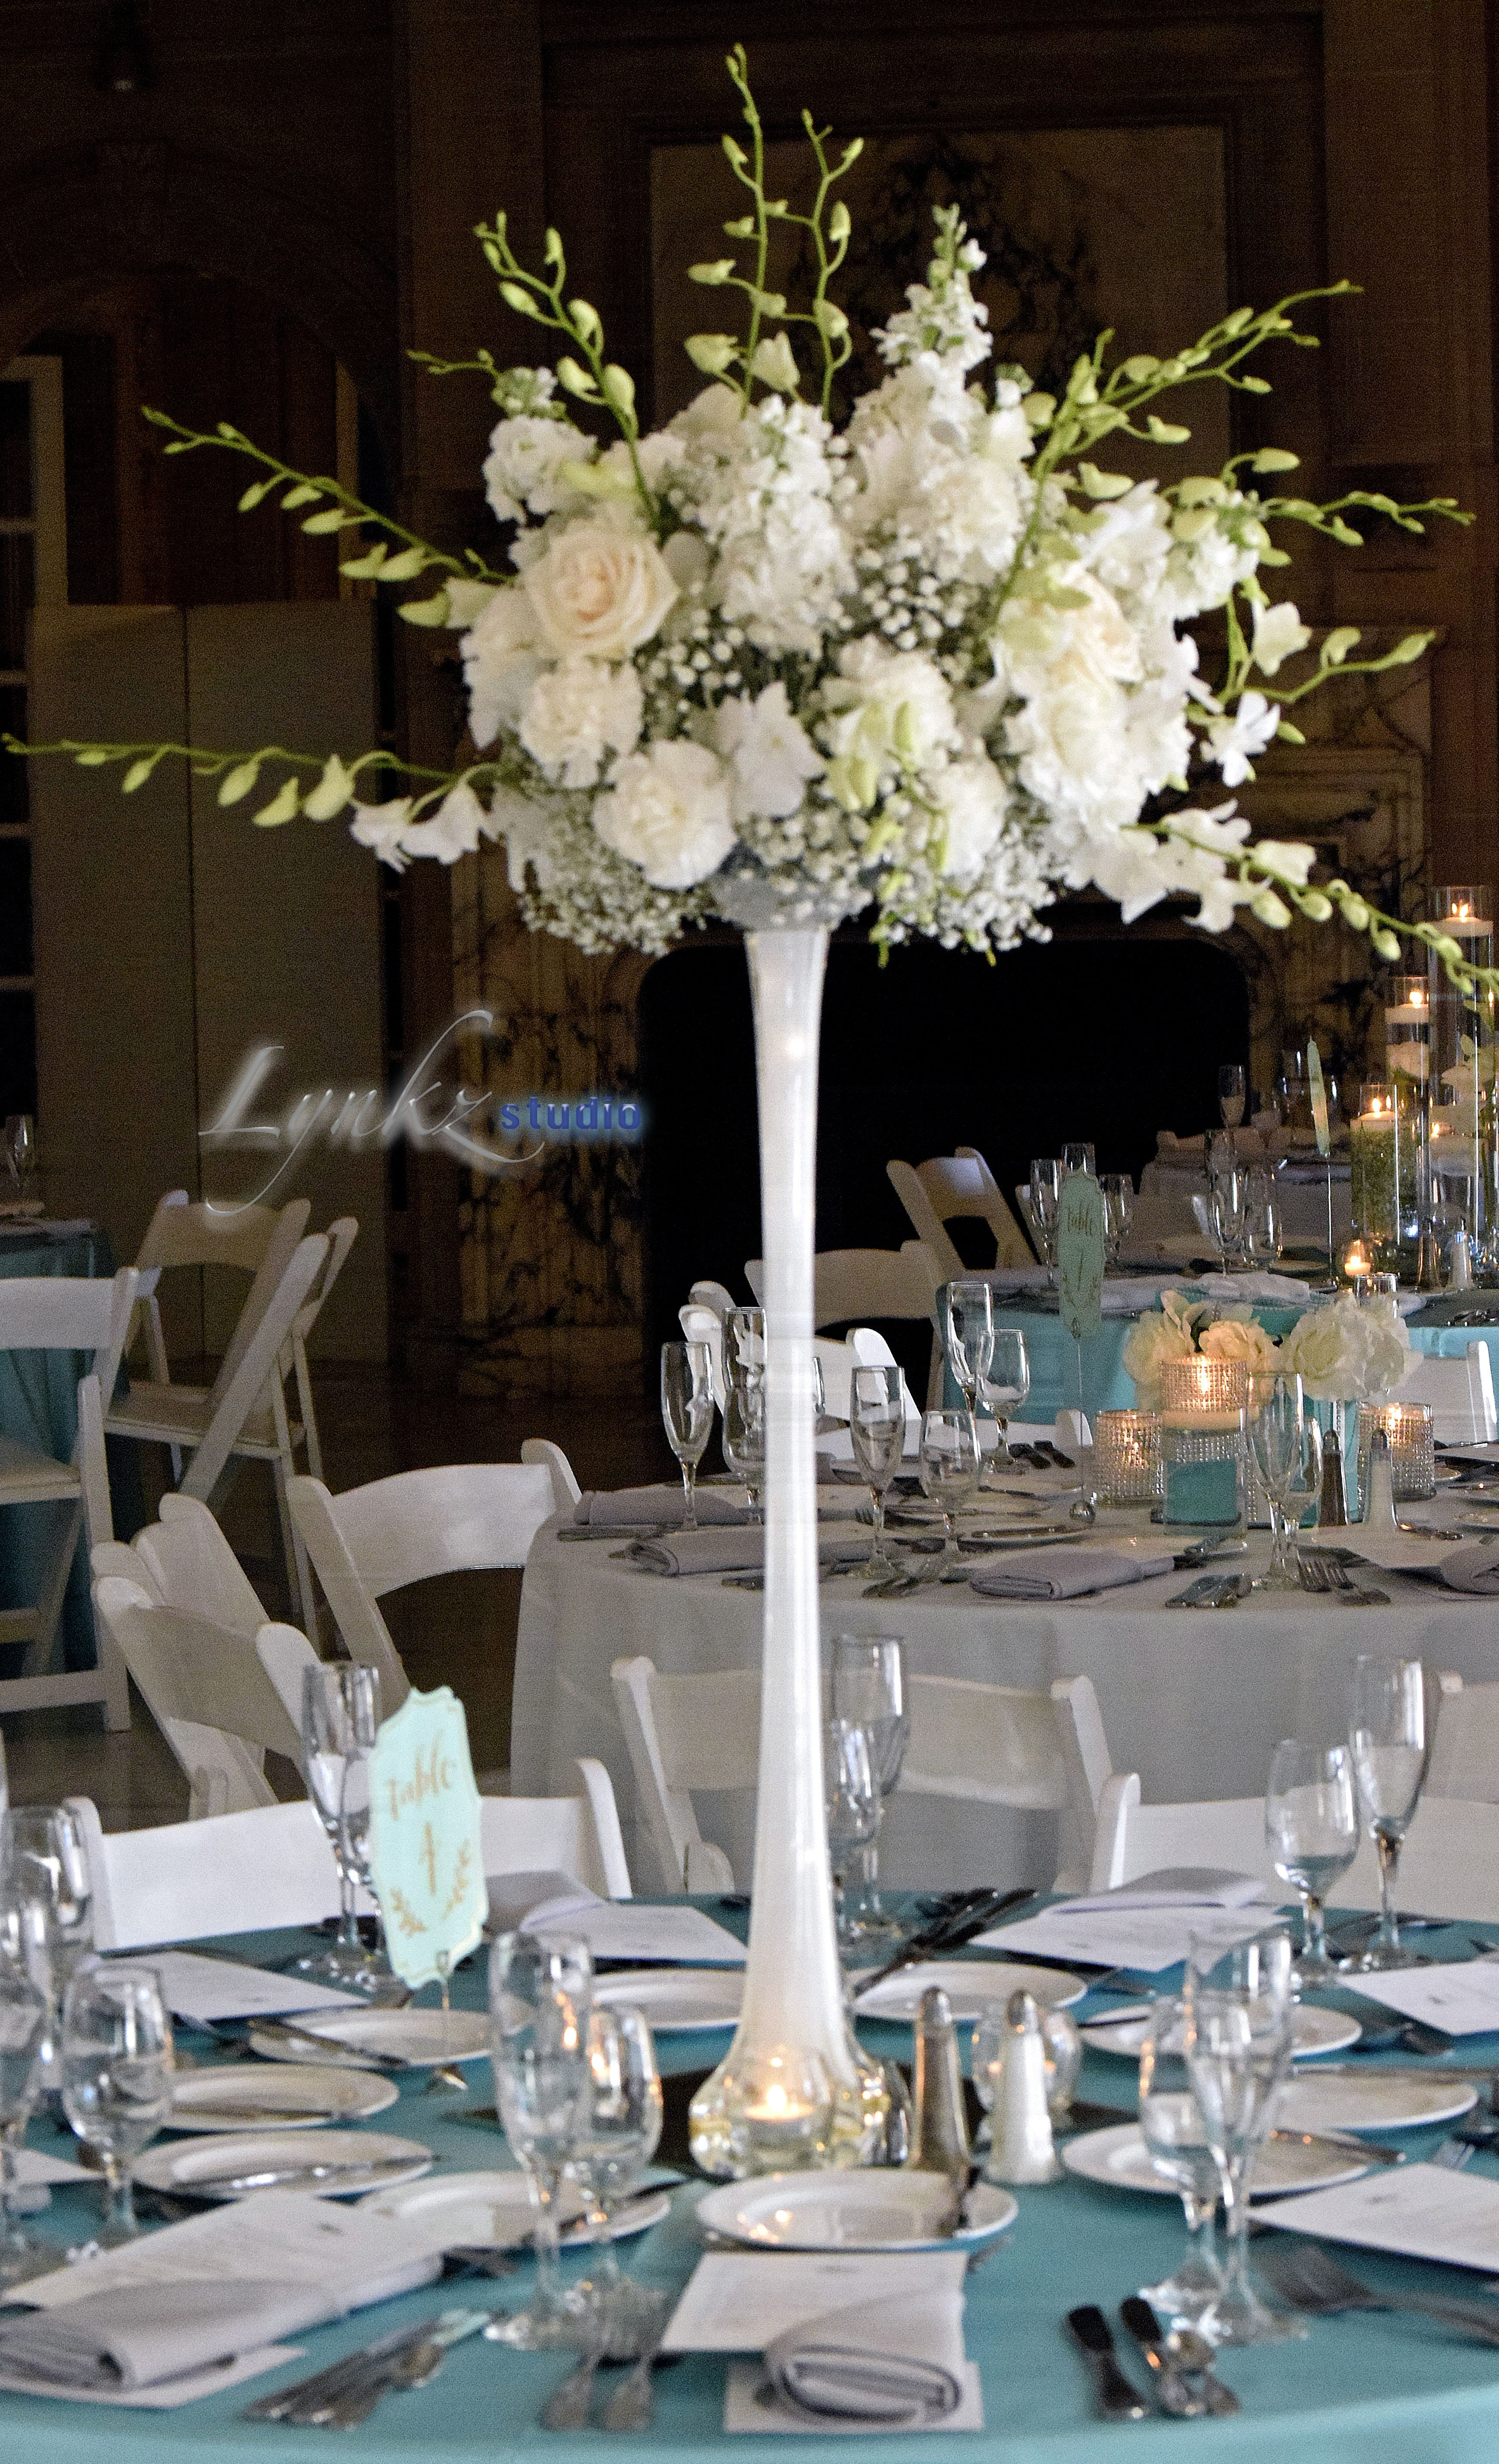 floor vase and flowers of decorating ideas for tall vases awesome h vases giant floor vase i intended for decorating ideas for tall vases luxury guest table centerpiece on eiffel tower vase with white dendrobium